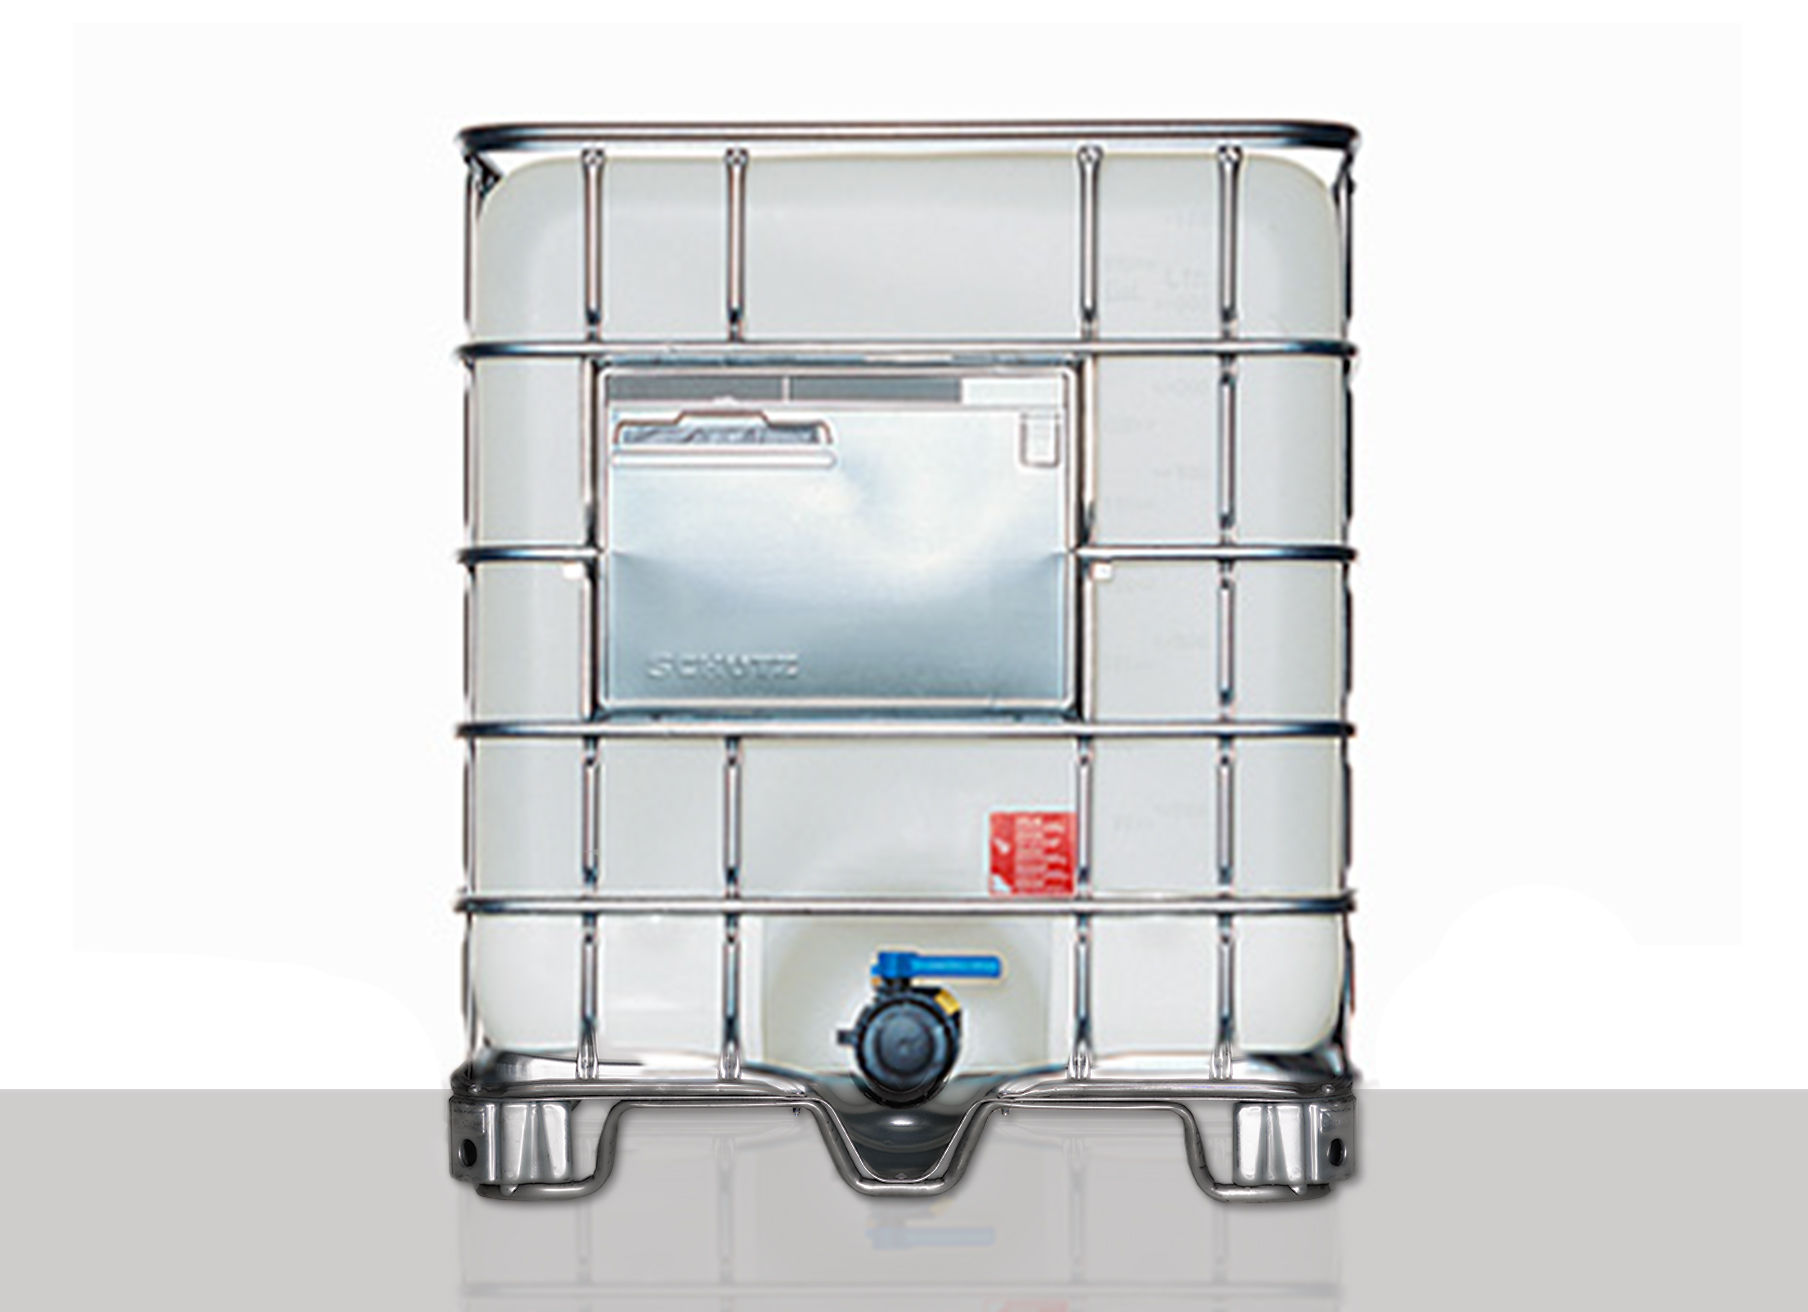 IBC Container Barriere: 1.000,0 Liter, Farbe: natur